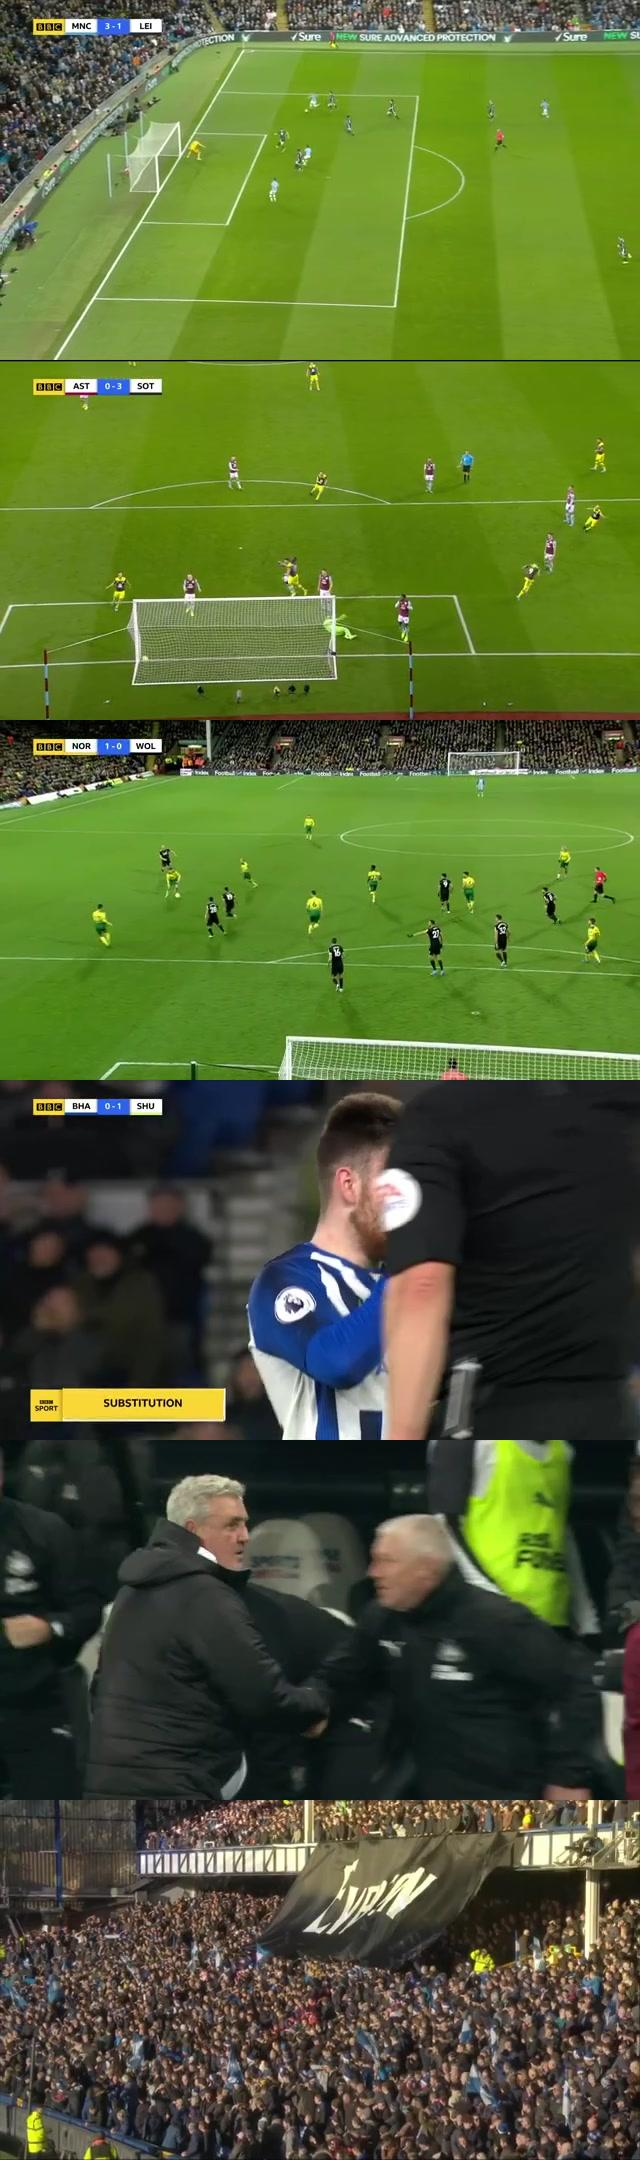 130694049_match-of-the-day-2019-12-21-aac-mp4-mobile.jpg